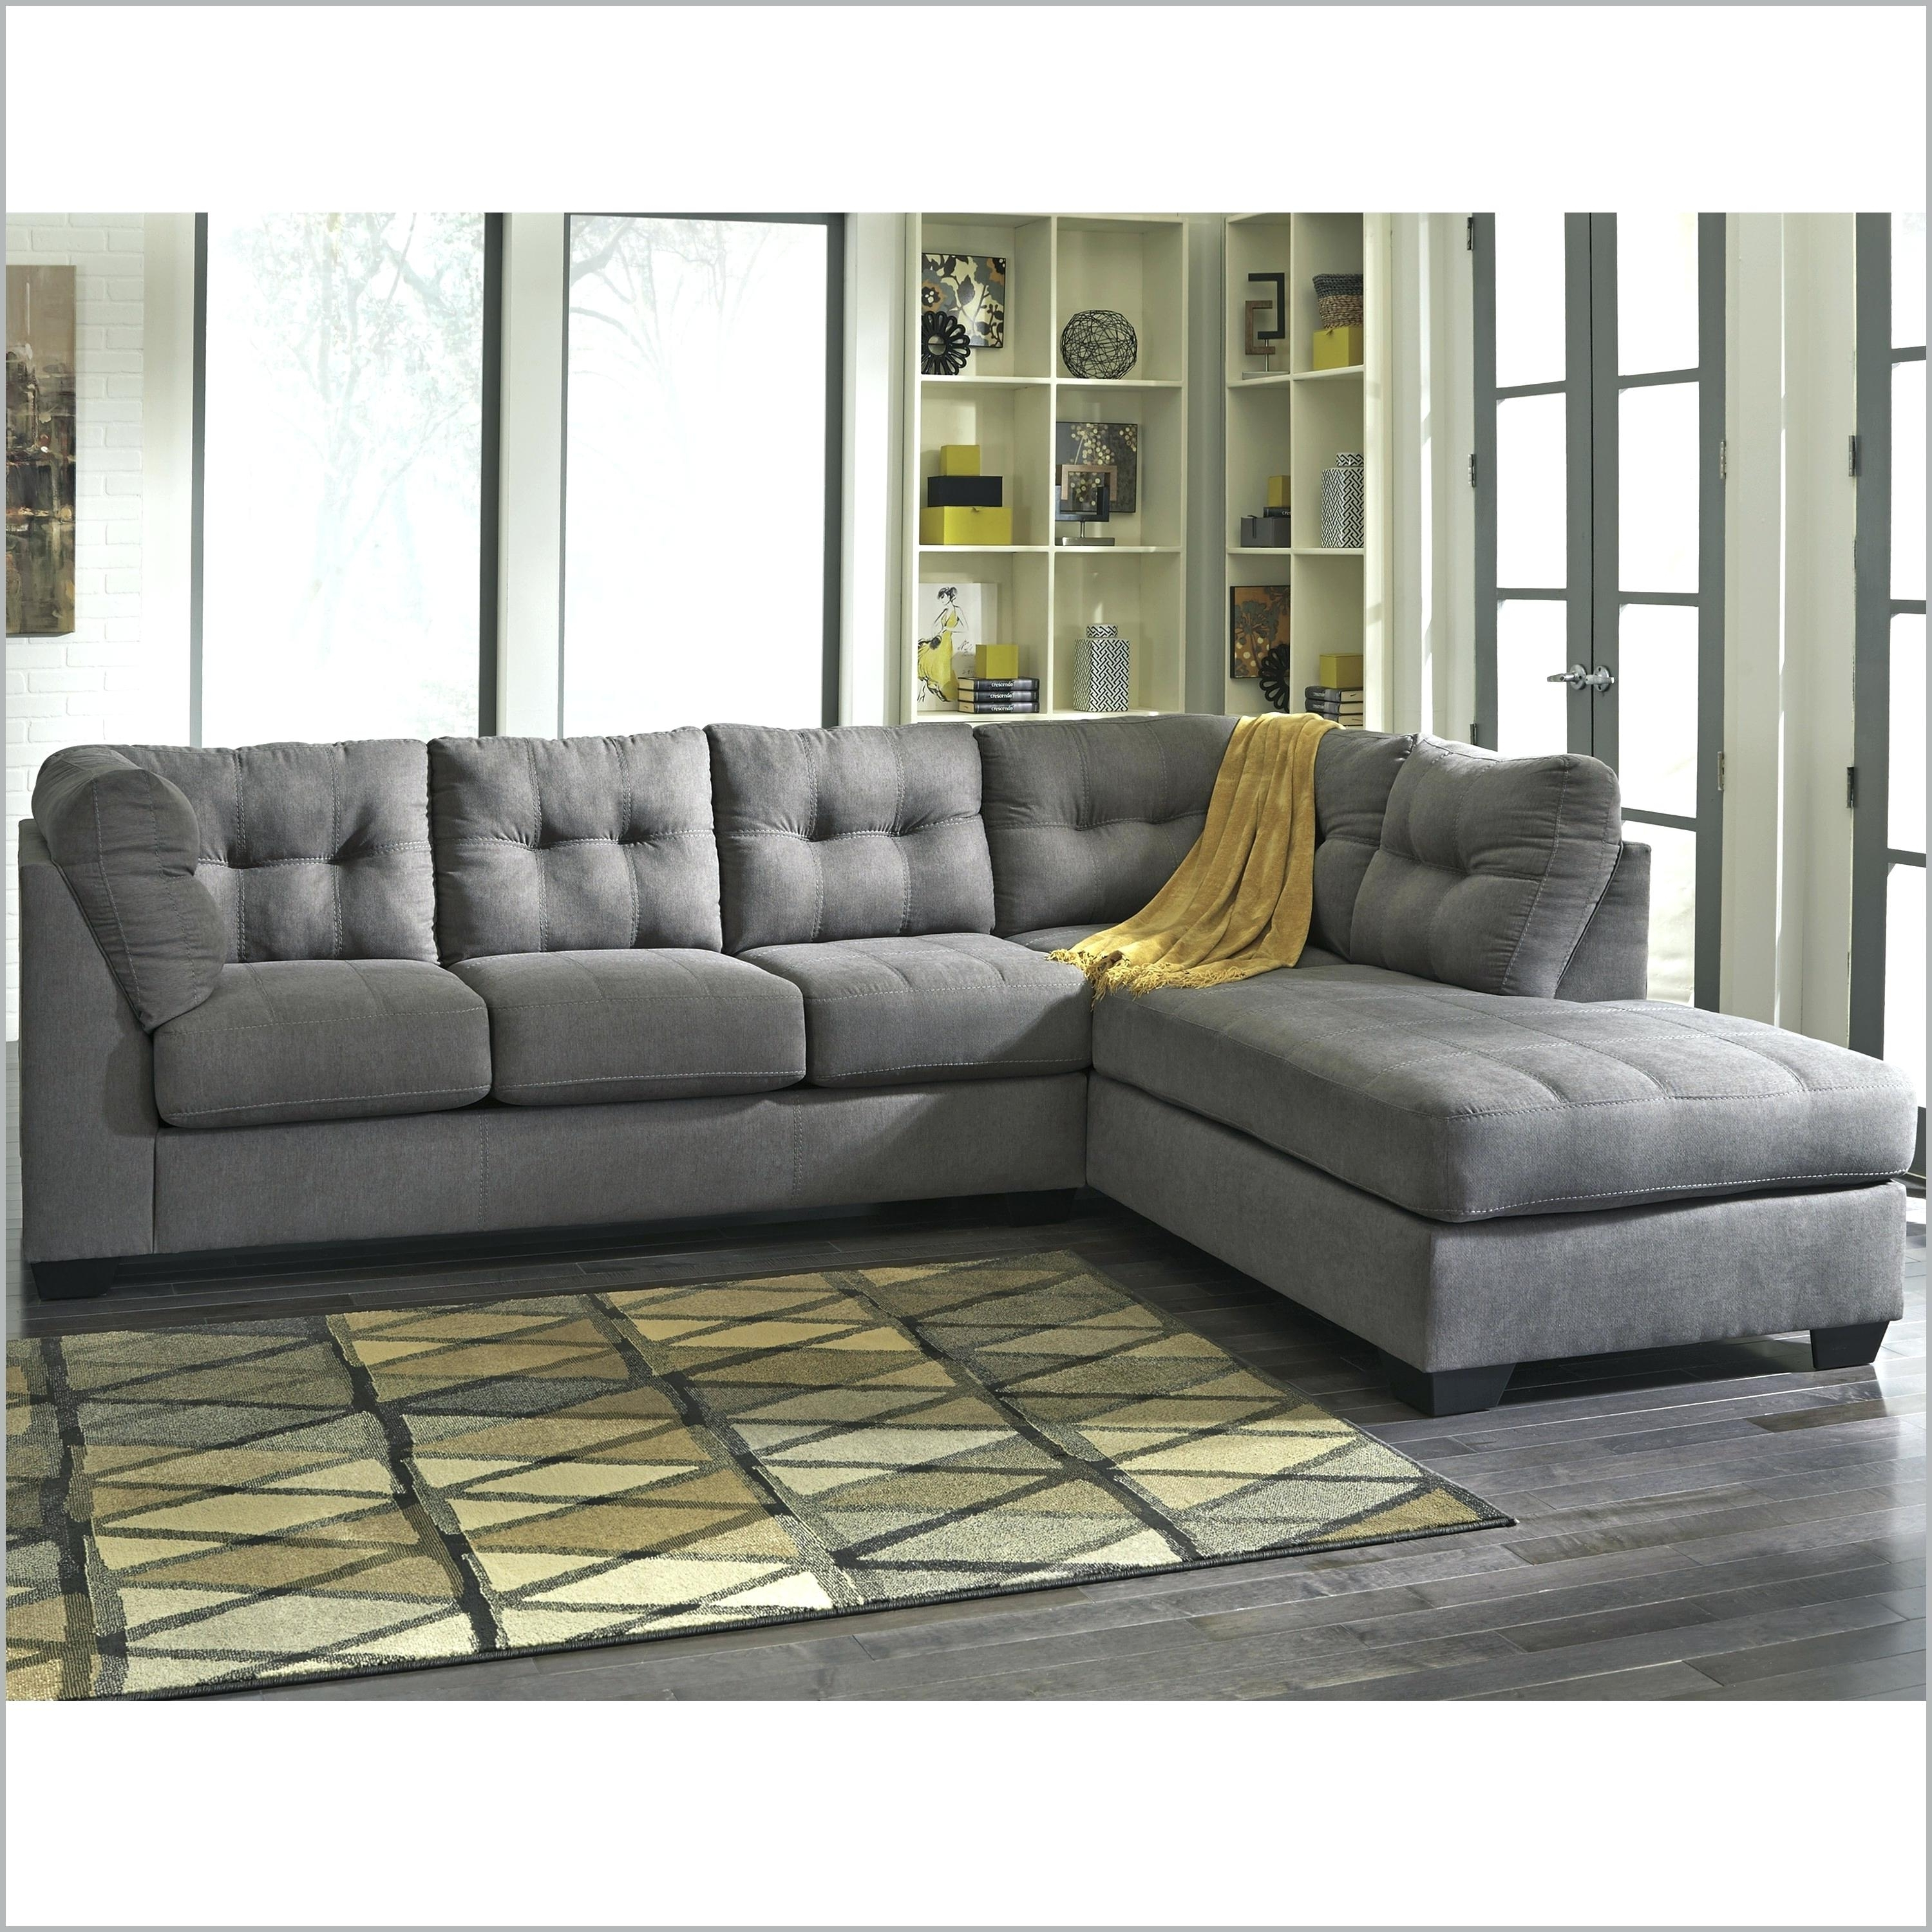 Take a Look at These Awesome Sectional Sofas Okc Galleries ...